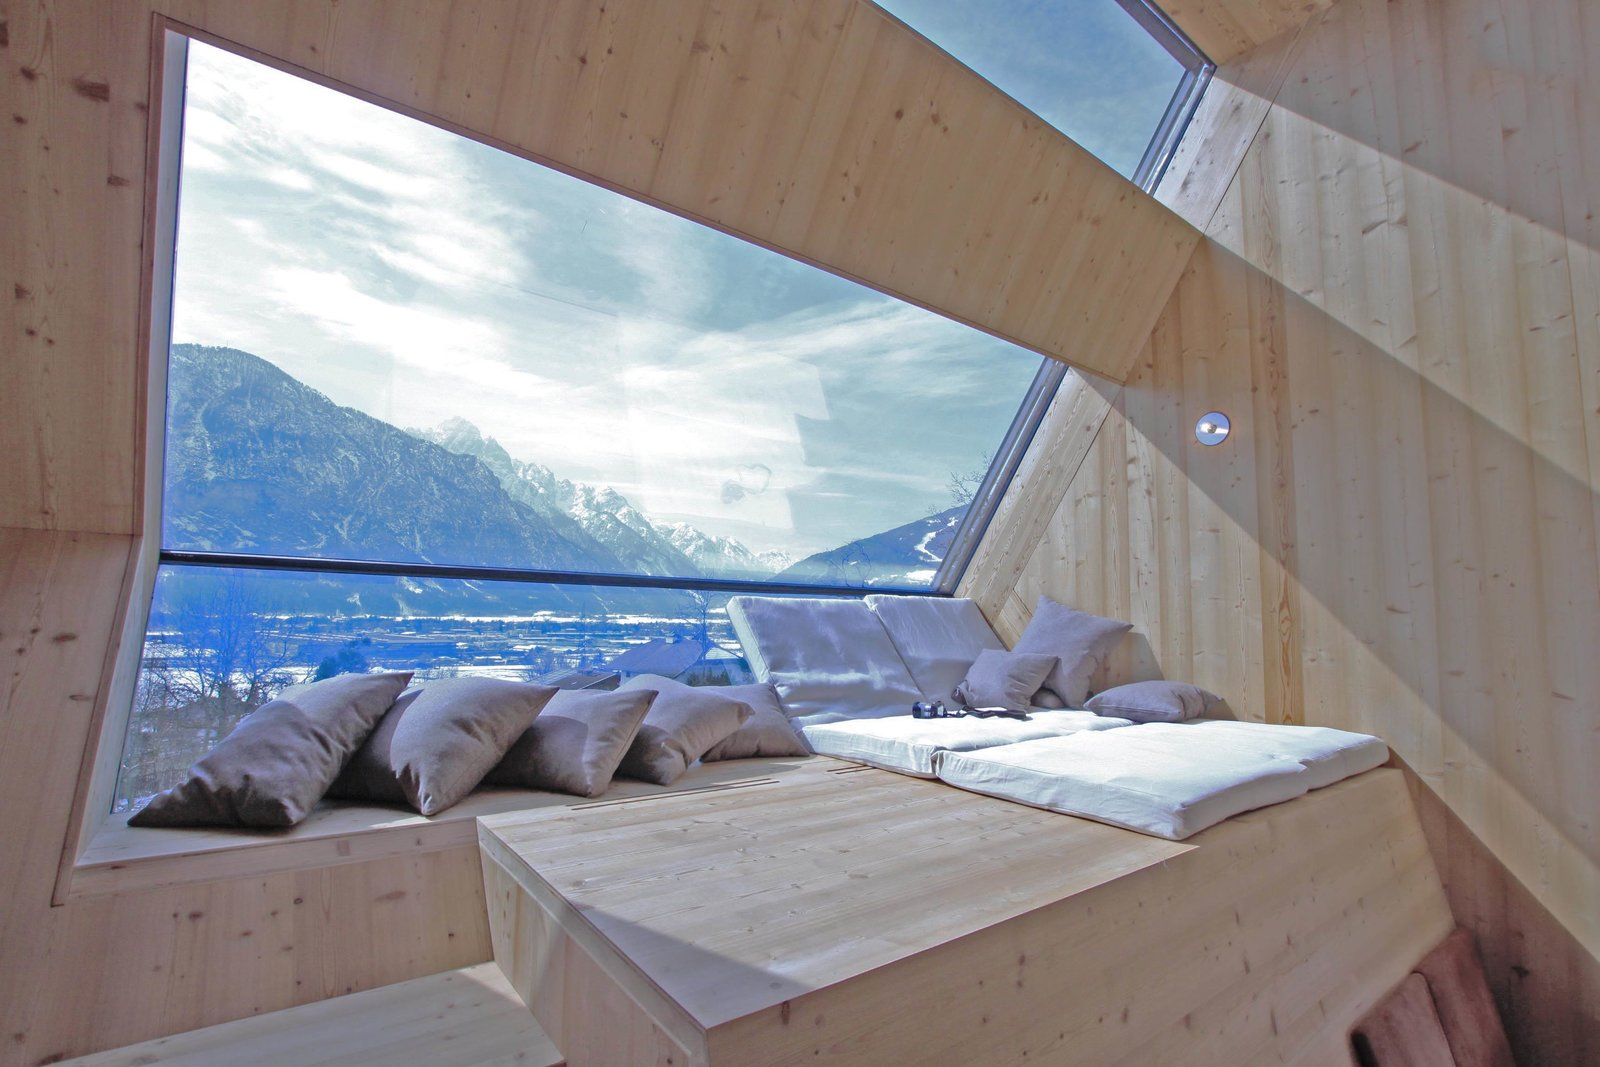 Fitted with waterproof and rot-resistant larch wood and large, angled-glass windows, the interior has a warm, sci-fi-inspired feel and gets flooded with sunlight during the day.